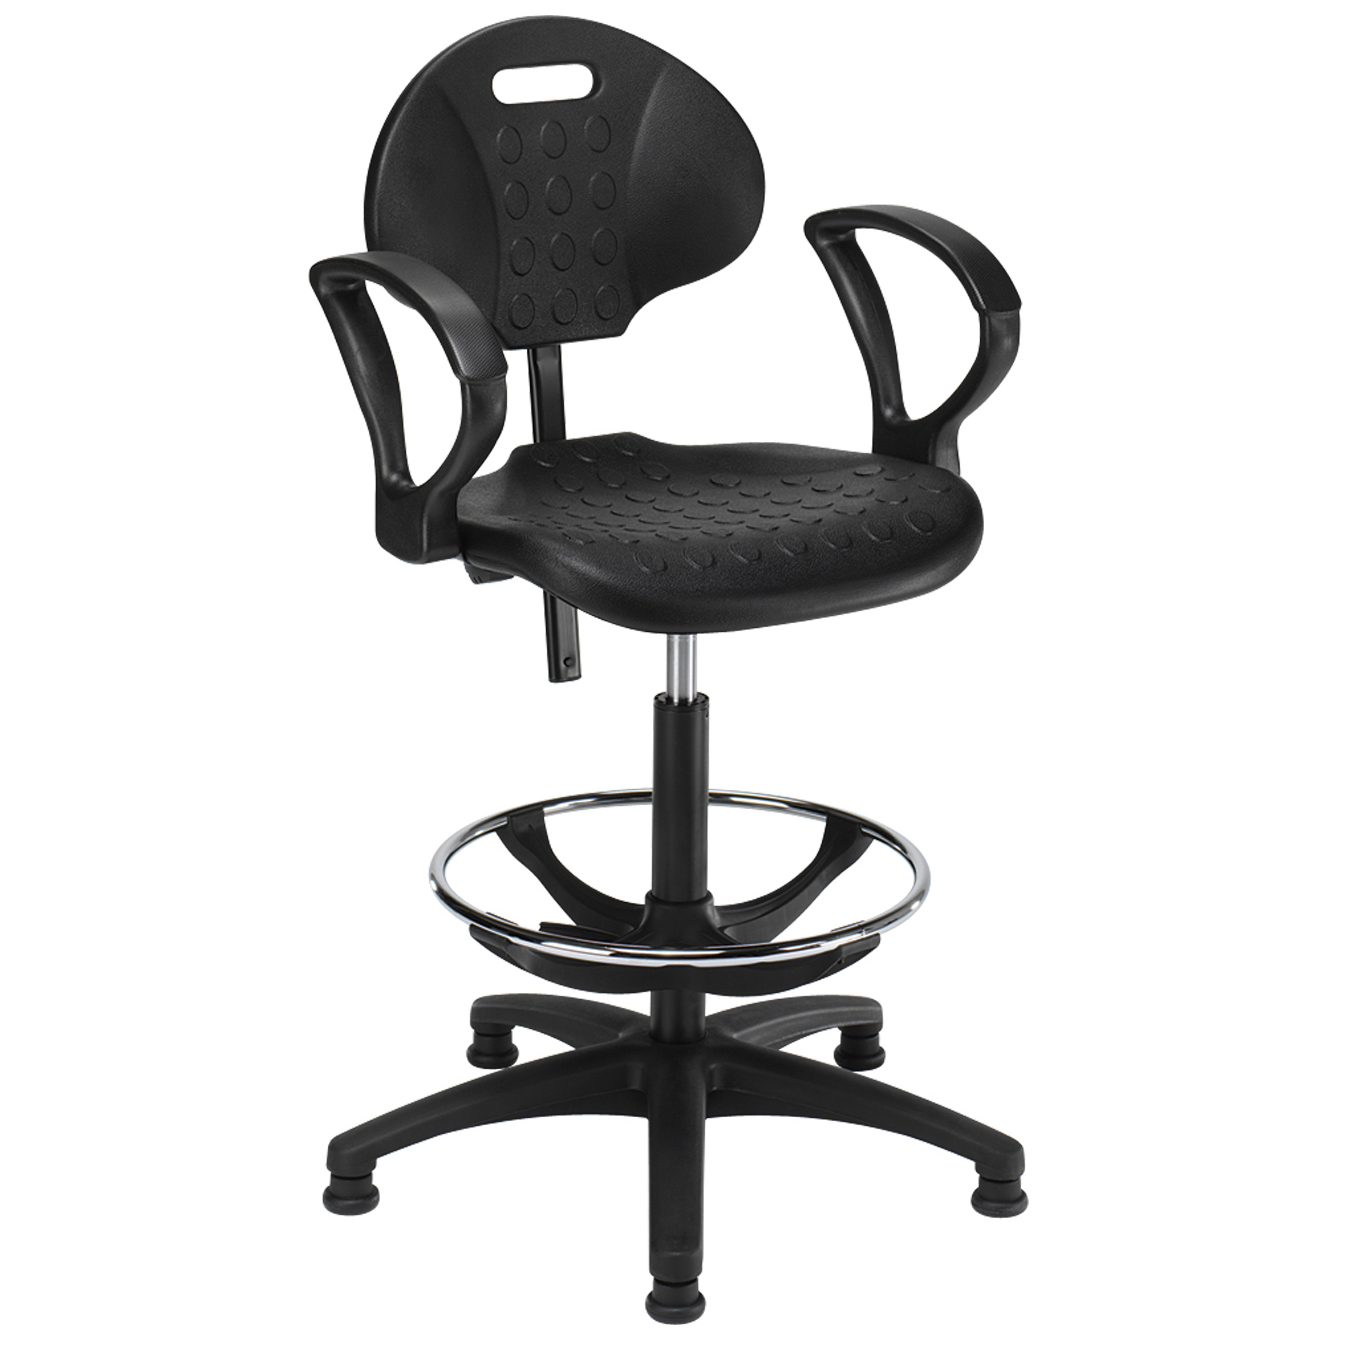 office chair upholstery repair leather living room chairs industrial draugtman ring arms ind6a hsi